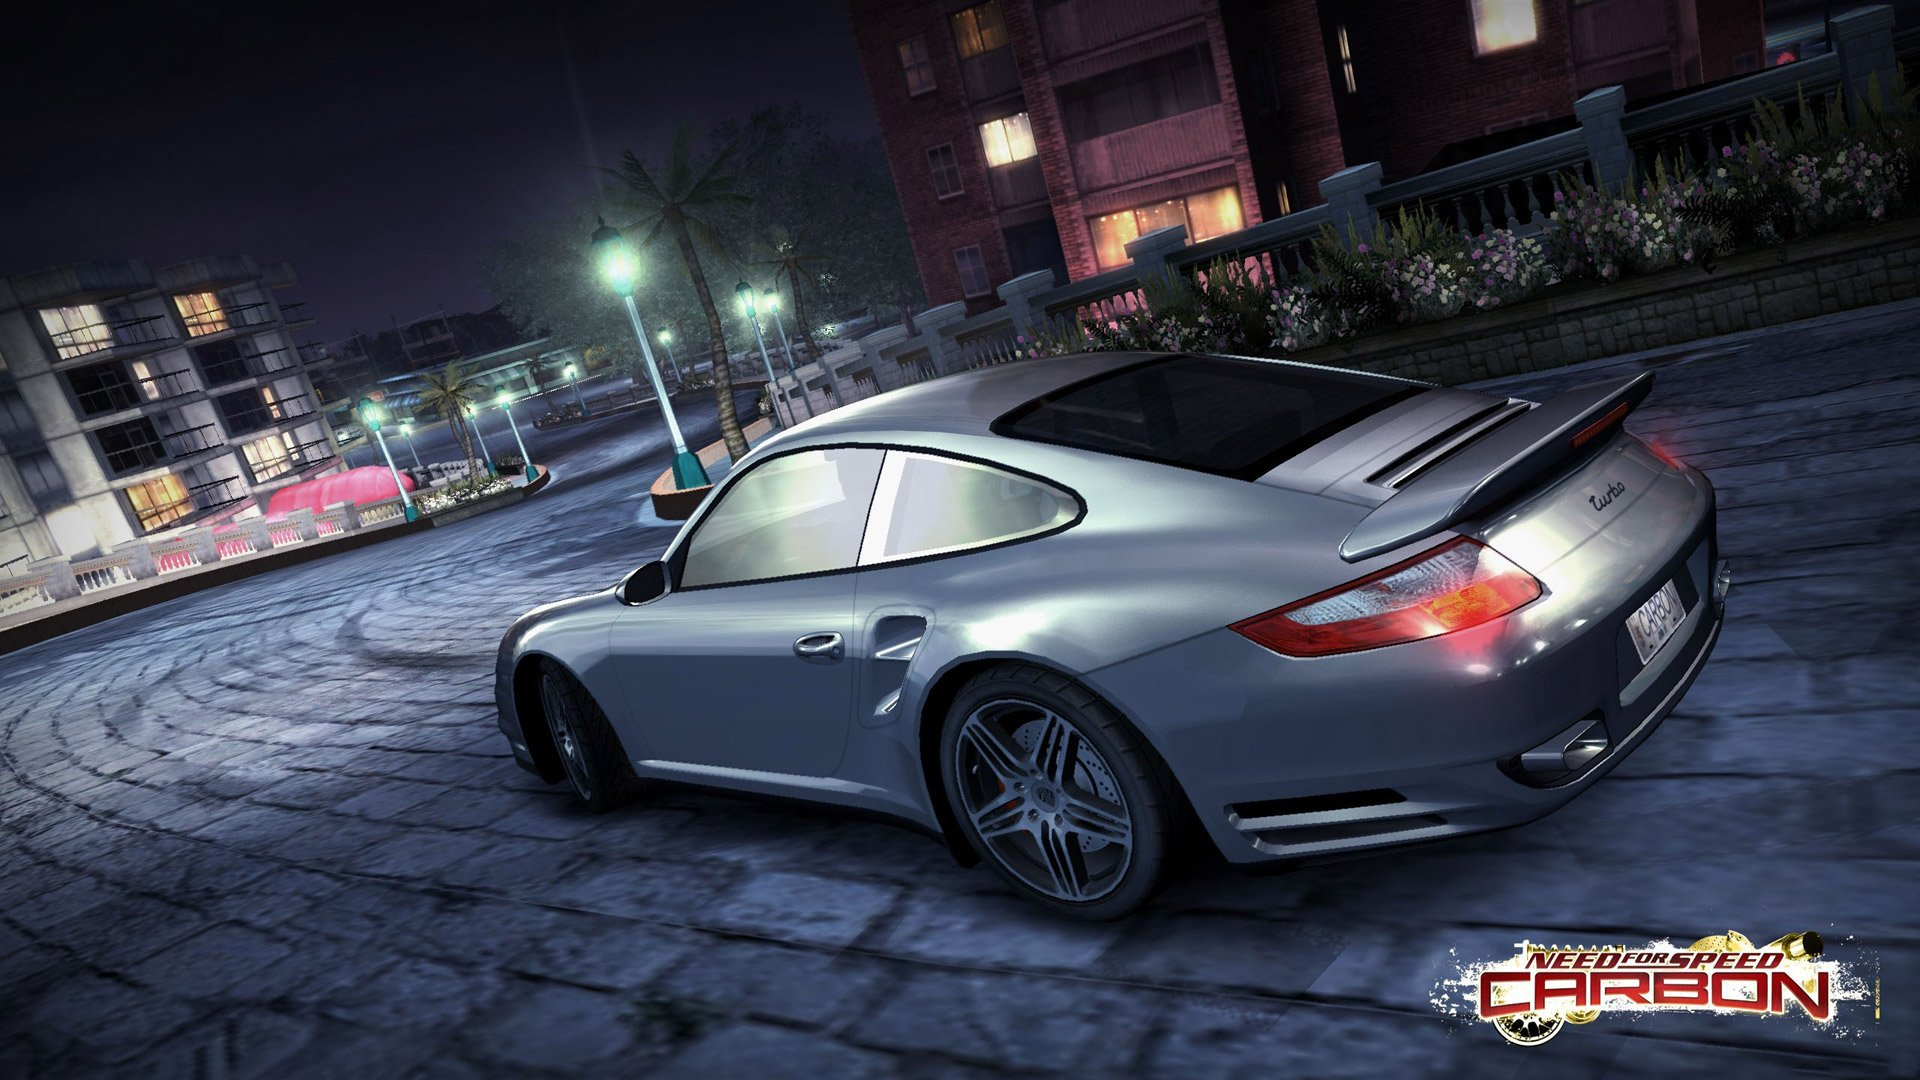 Free Download Need For Speed Carbon Wallpaper In 1920x1080